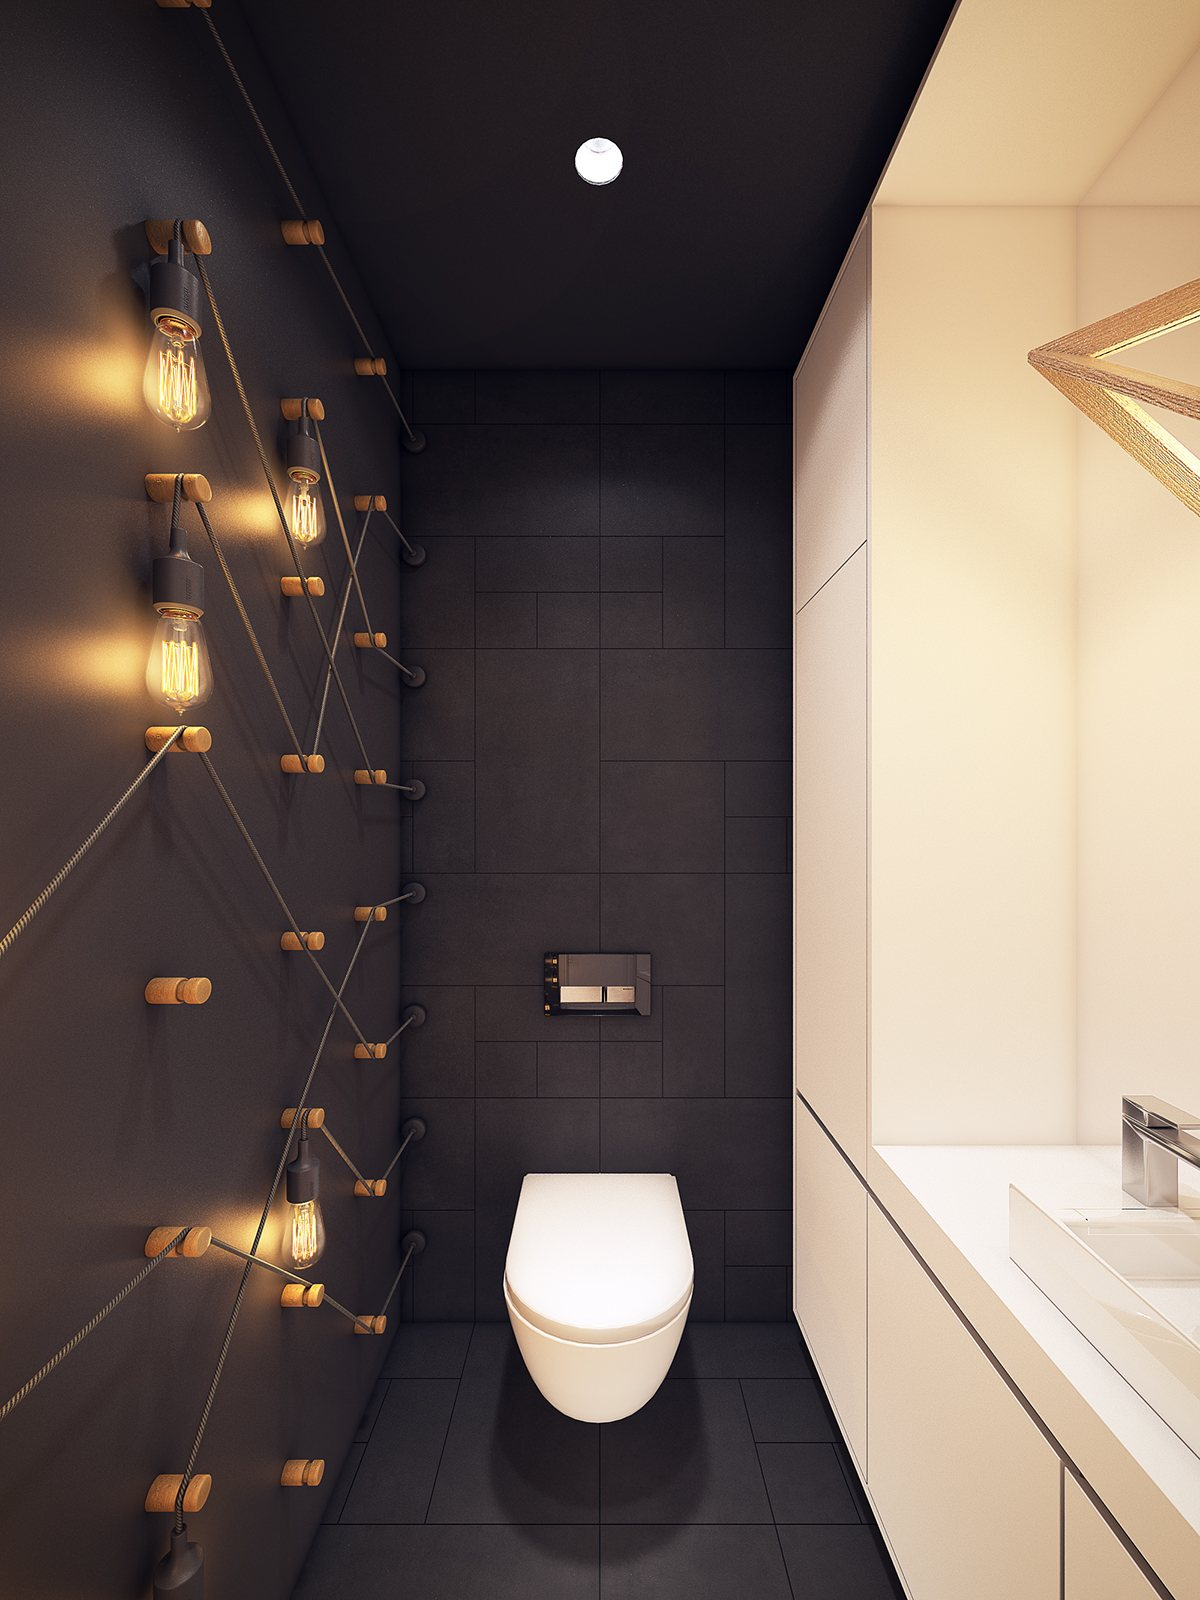 Groot modern en bijzonder toilet ontwerp interieur for Washroom design ideas